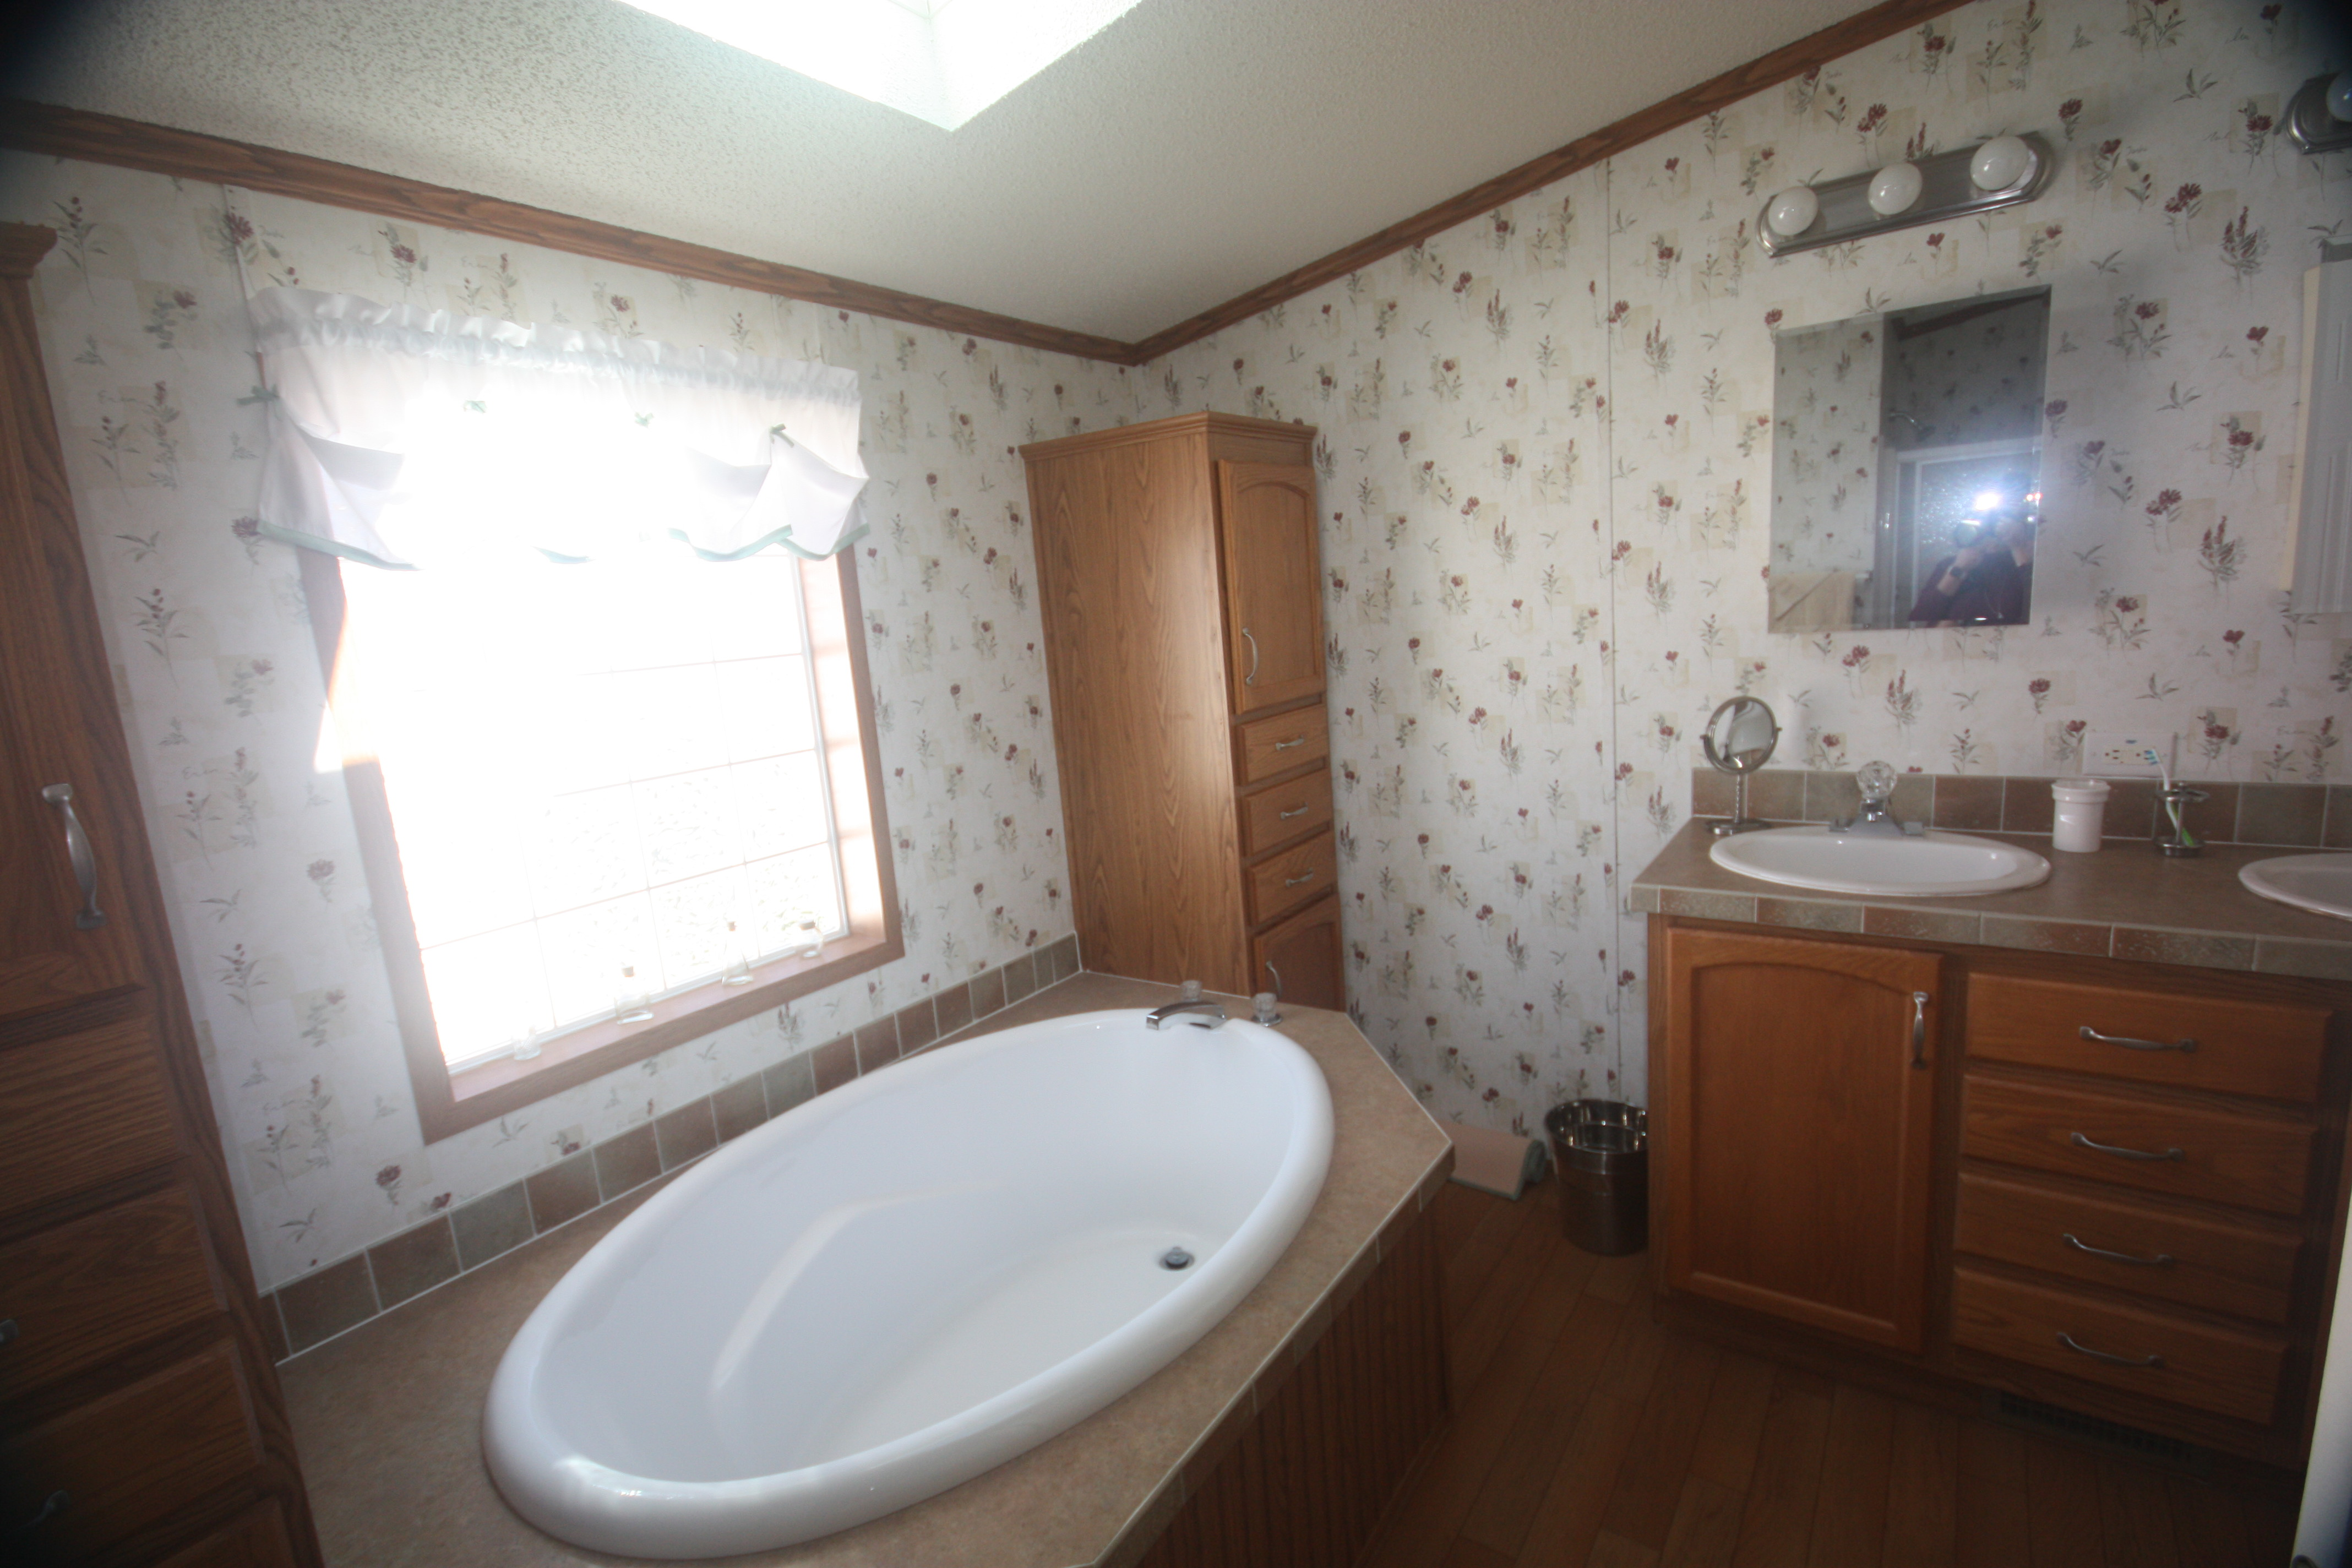 Pre-Owned Fleetwood Double Wide, 28x58